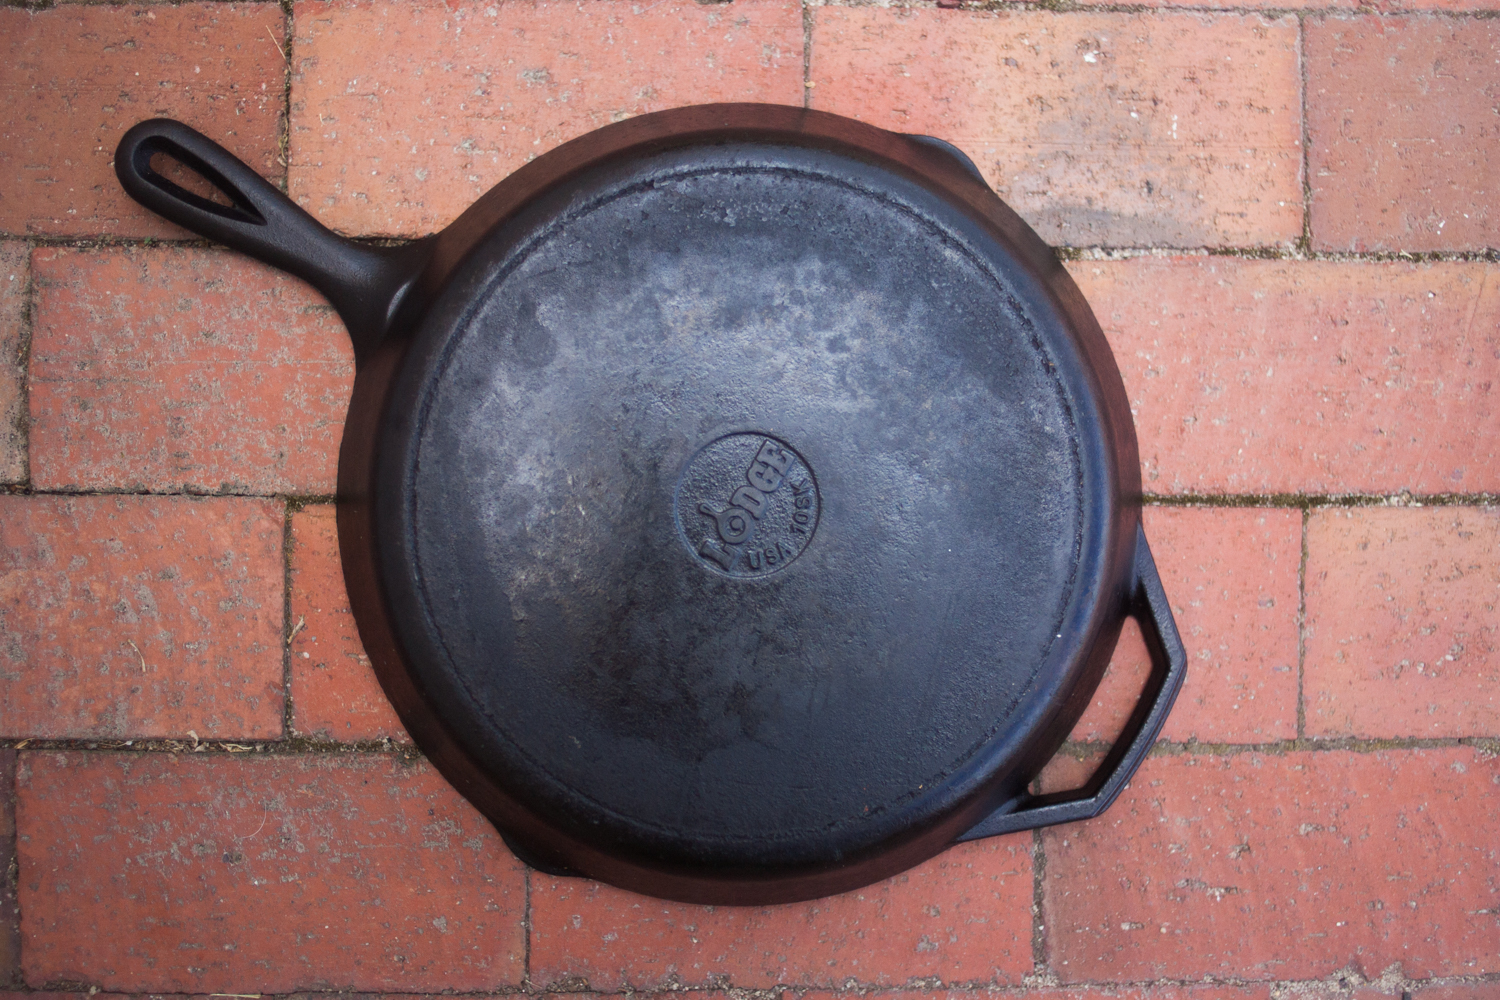 Bottom of a cast iron skillet